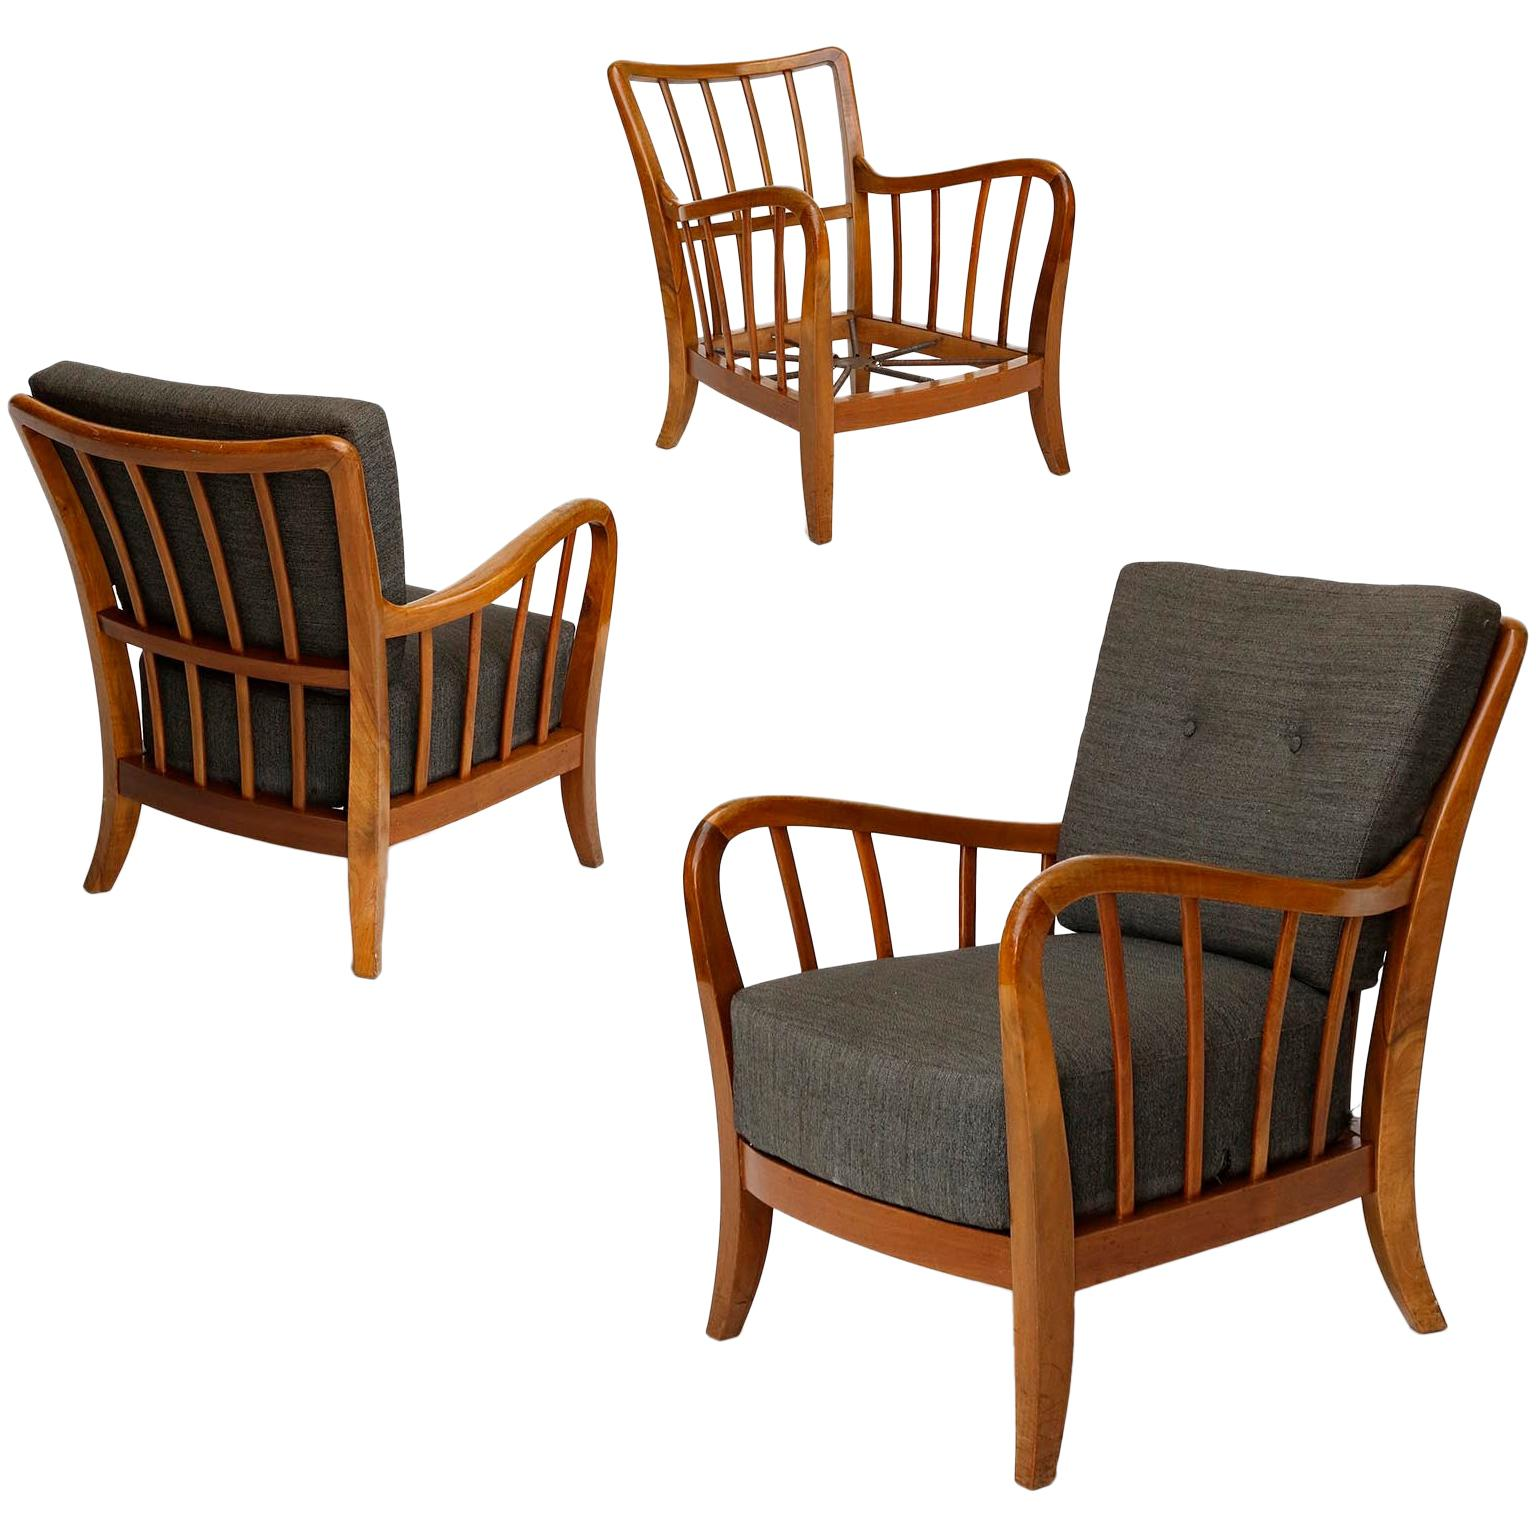 One of Three Armchairs Lounge Chairs Walnut Wood, Josef Frank Attributed, Thonet